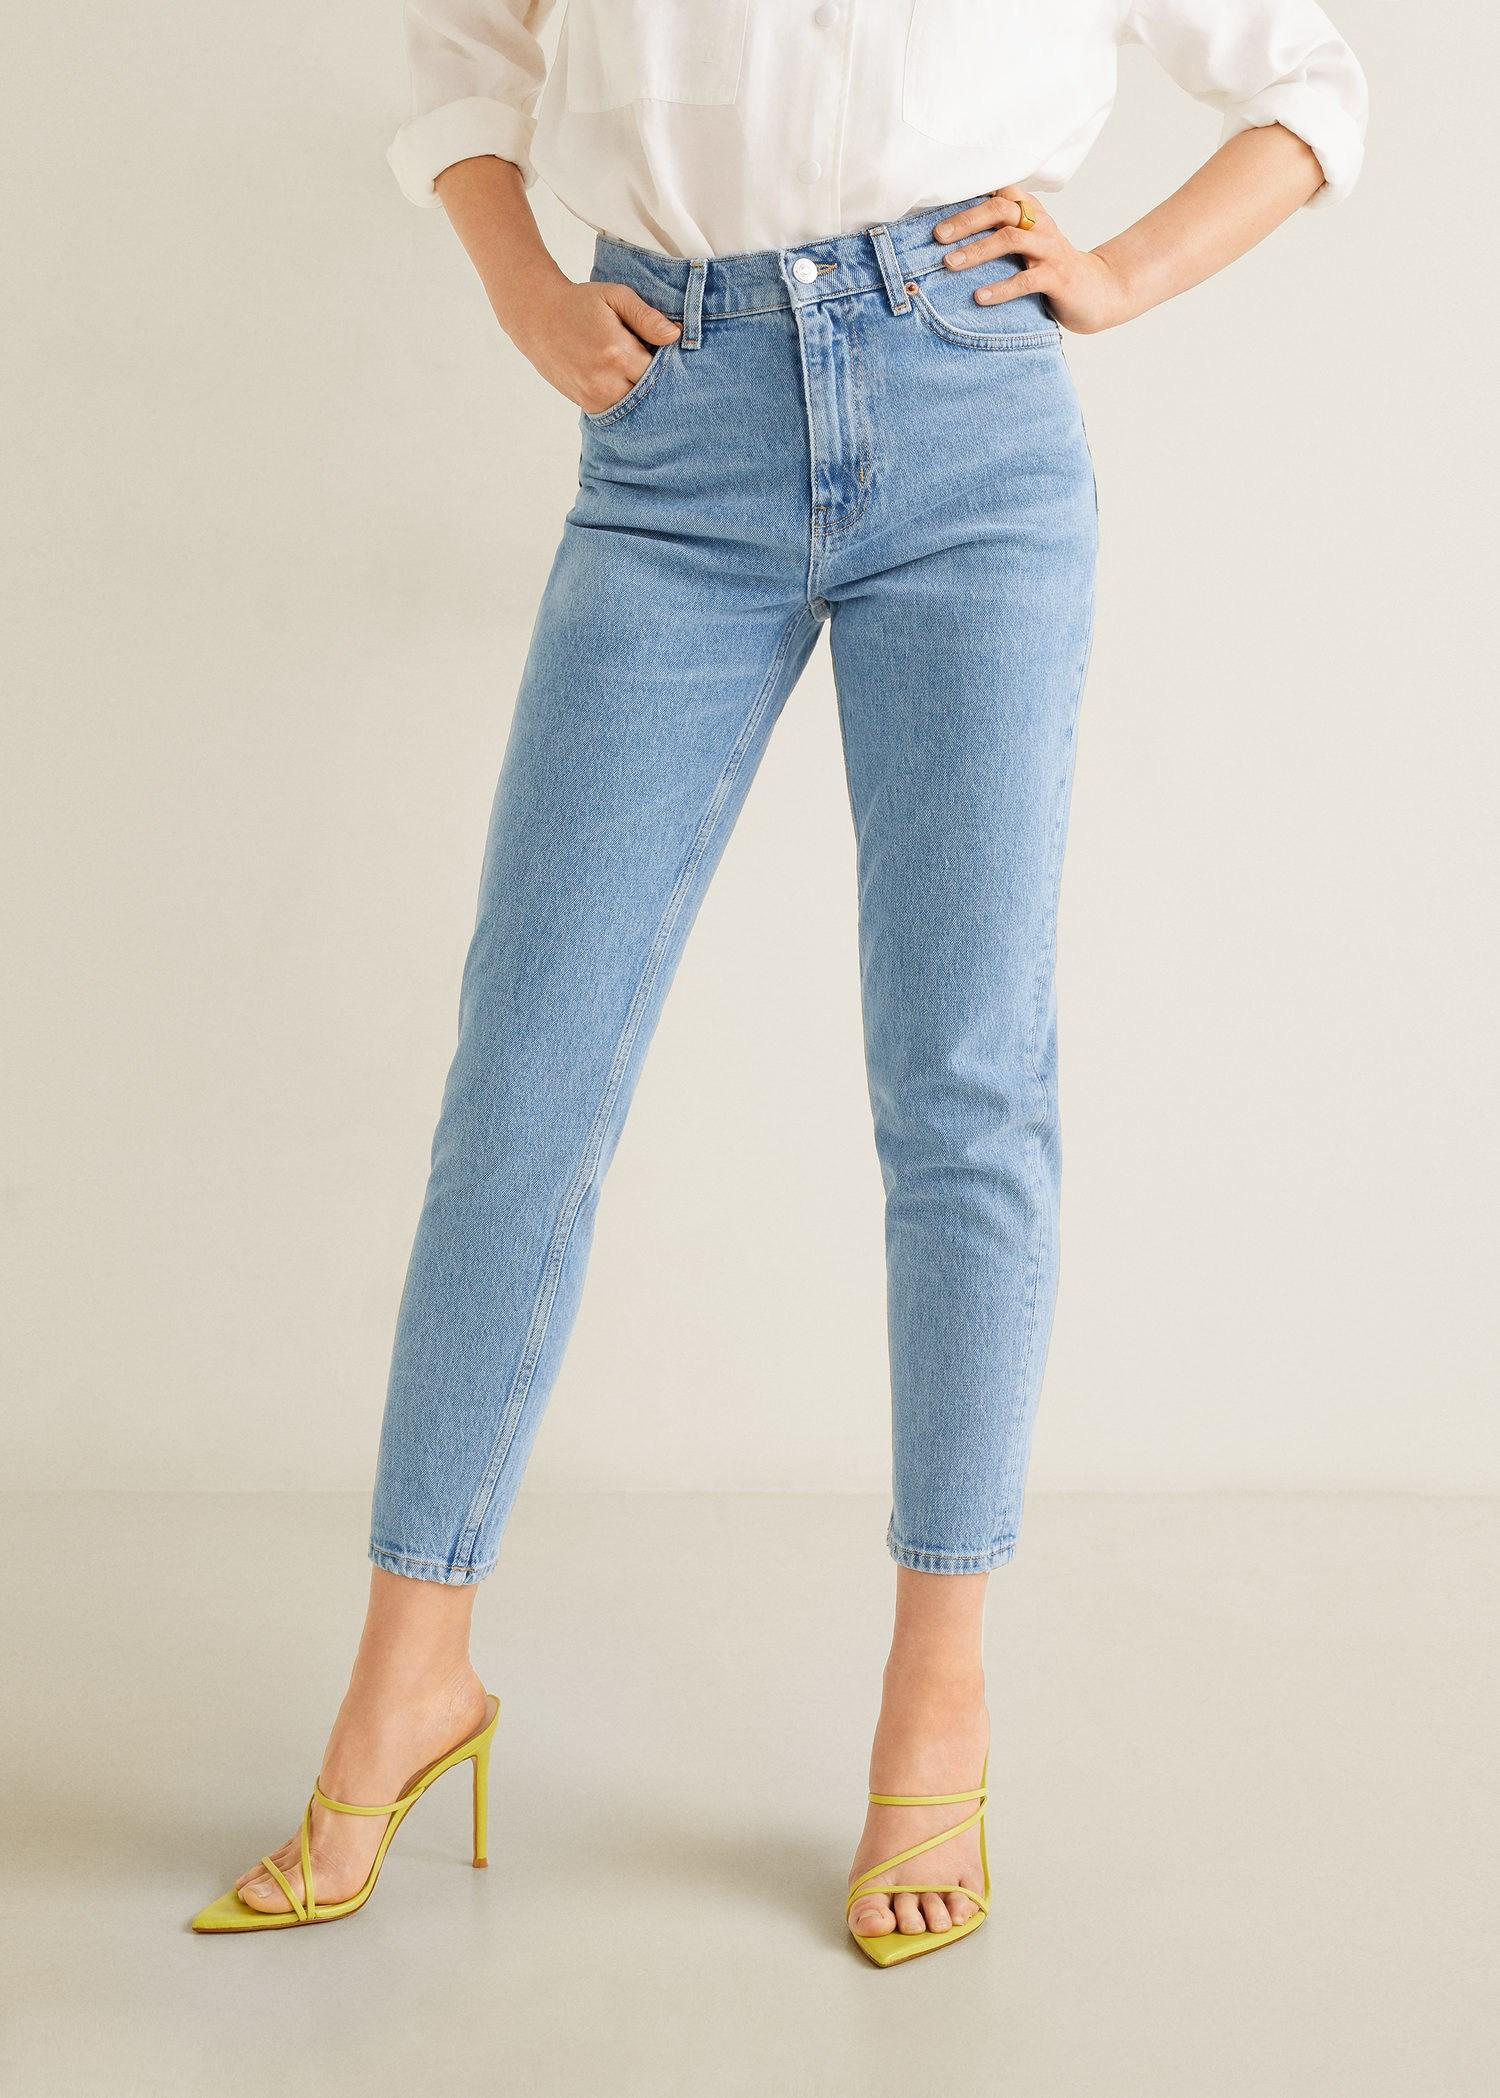 3b2a1388e23 Mango Slim-fit New Mom Jeans in Blue - Lyst